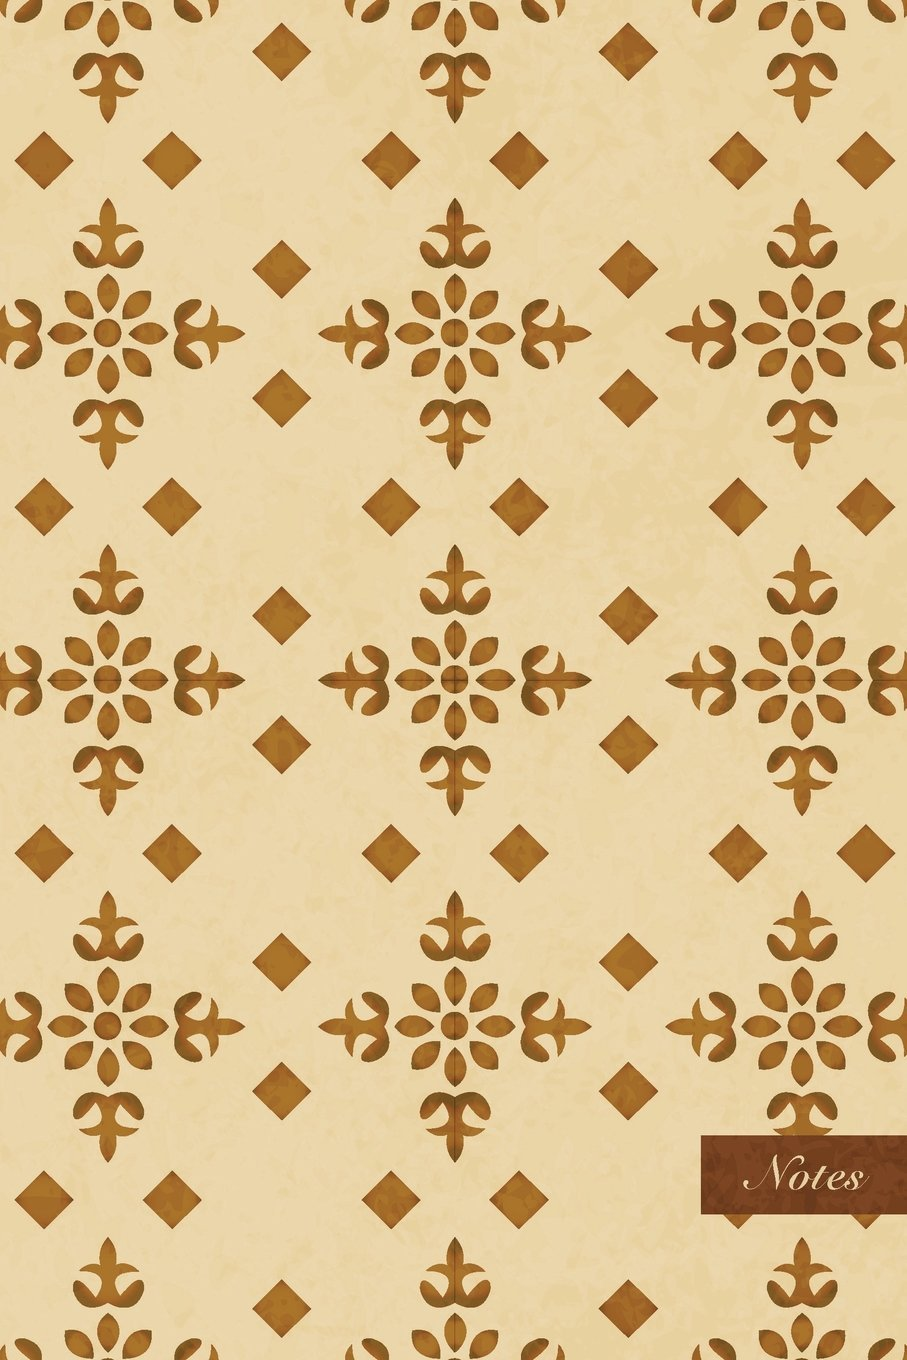 """Notes: 6""""x9"""" Ruled Lined Notebook - Check Cross Plant Flower - Retro Brown Worn Out Vintage Seamless Pattern Cover. Matte Softcover And Cream Interior Papers. ebook"""